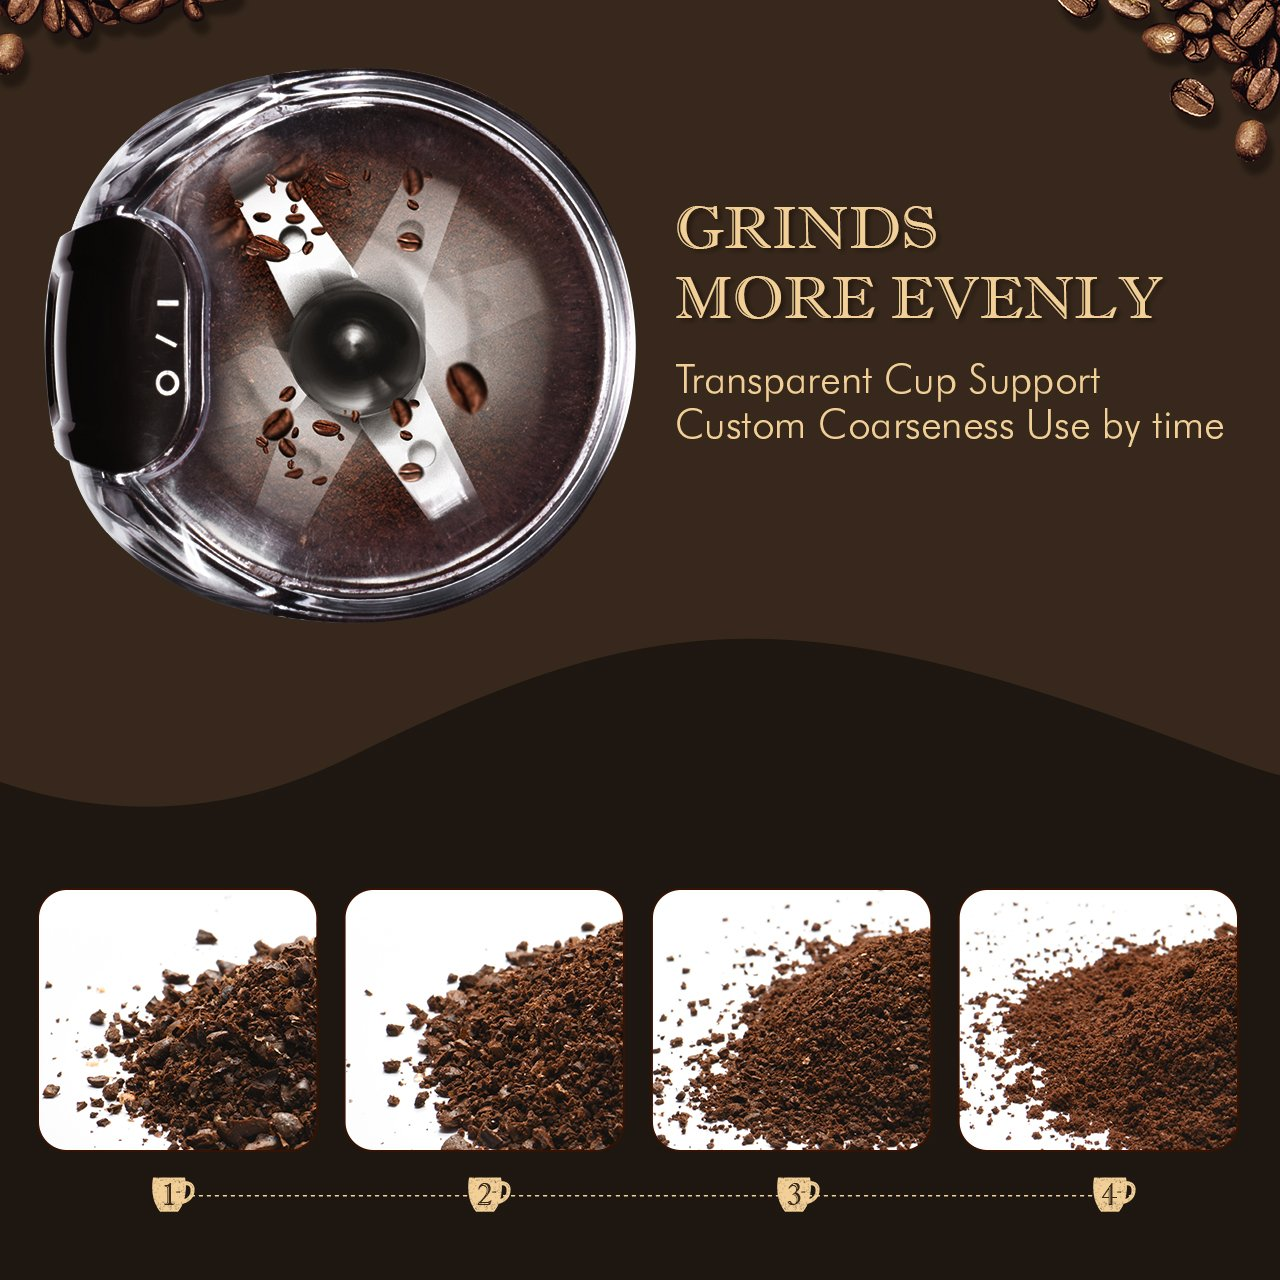 Homitt Electric Coffee Grinder, One-Touch Coffee Bean Grinder with Upgrade Noiseless Motor and 301 Stainless Steel Blades for Evenly and Versatile Grinding-Support Home and Office Portable Use by Homitt (Image #3)